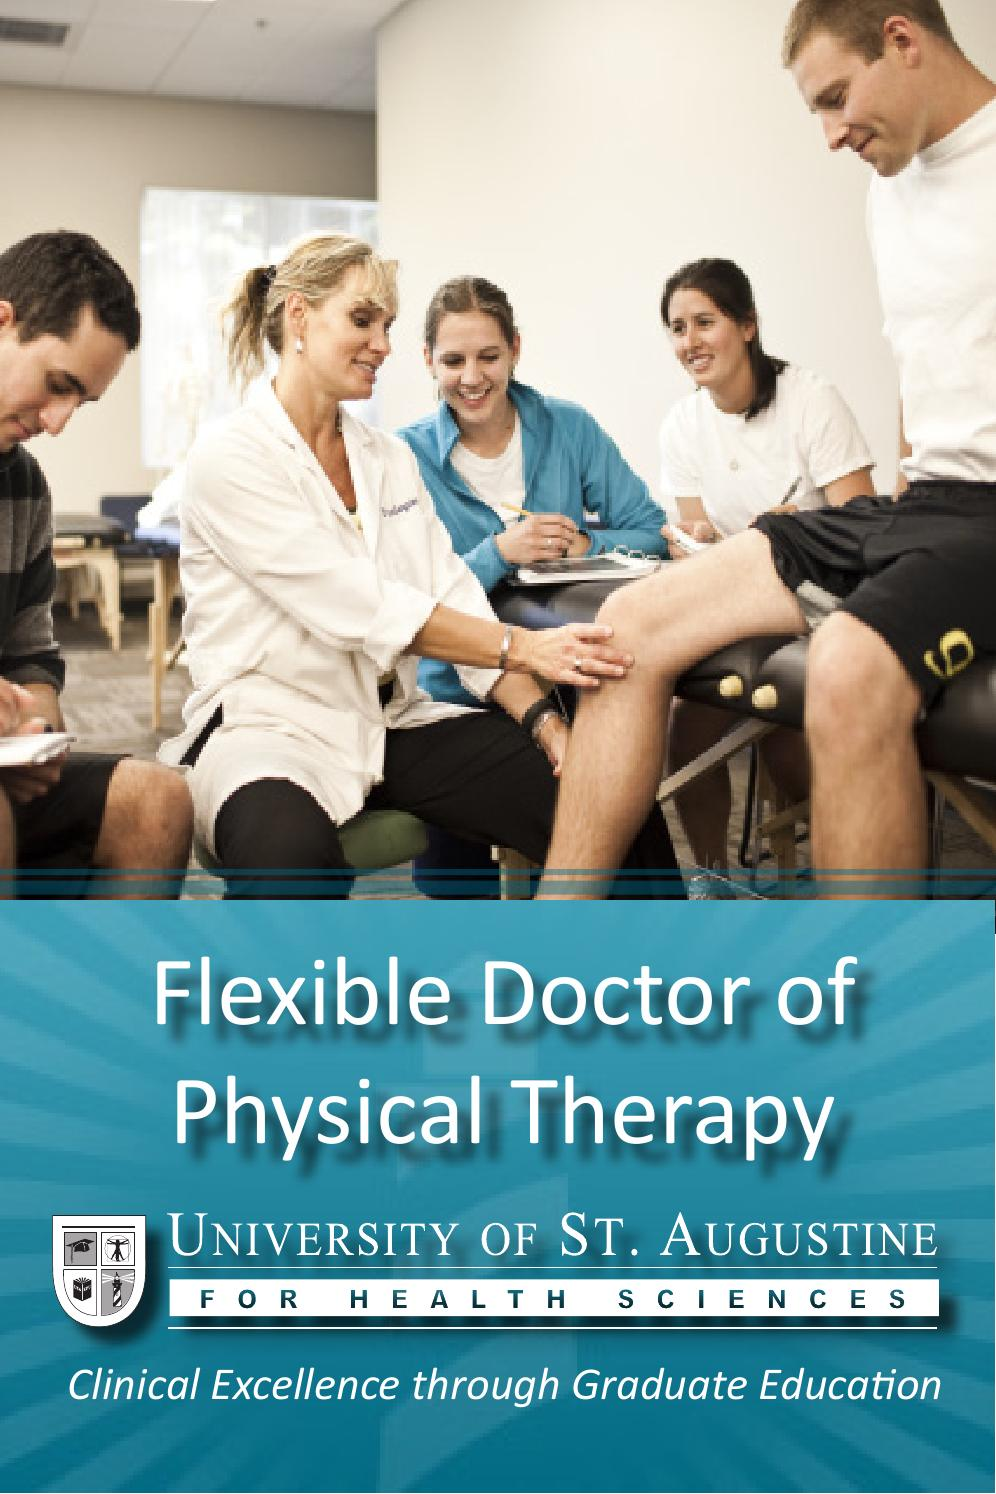 Doctor of physical therapy program - Flexible Doctor Of Physical Therapy Program Brochure By University Of St Augustine Issuu